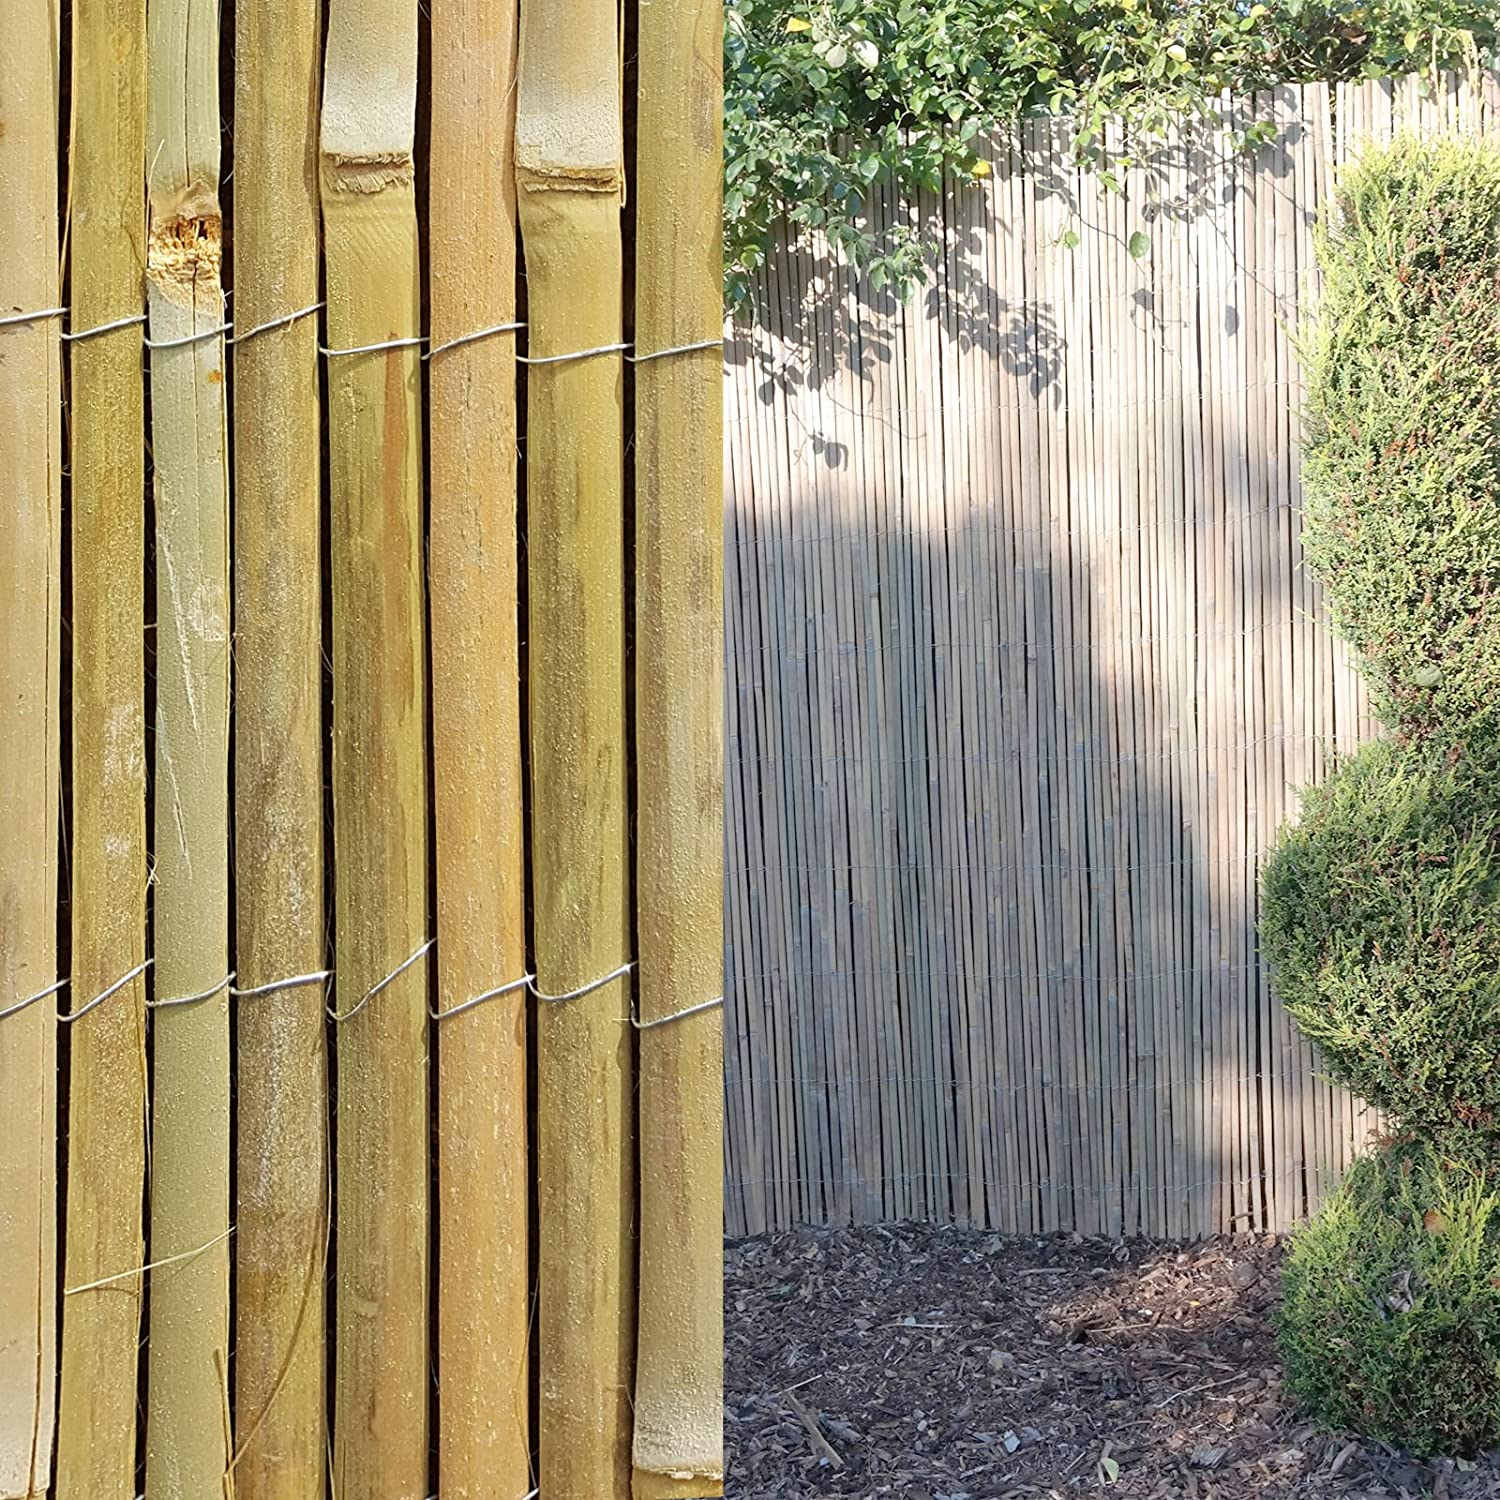 4m x 1m Whole Bamboo Natural Garden Fence Outdoor Privacy Screen Screening Roll